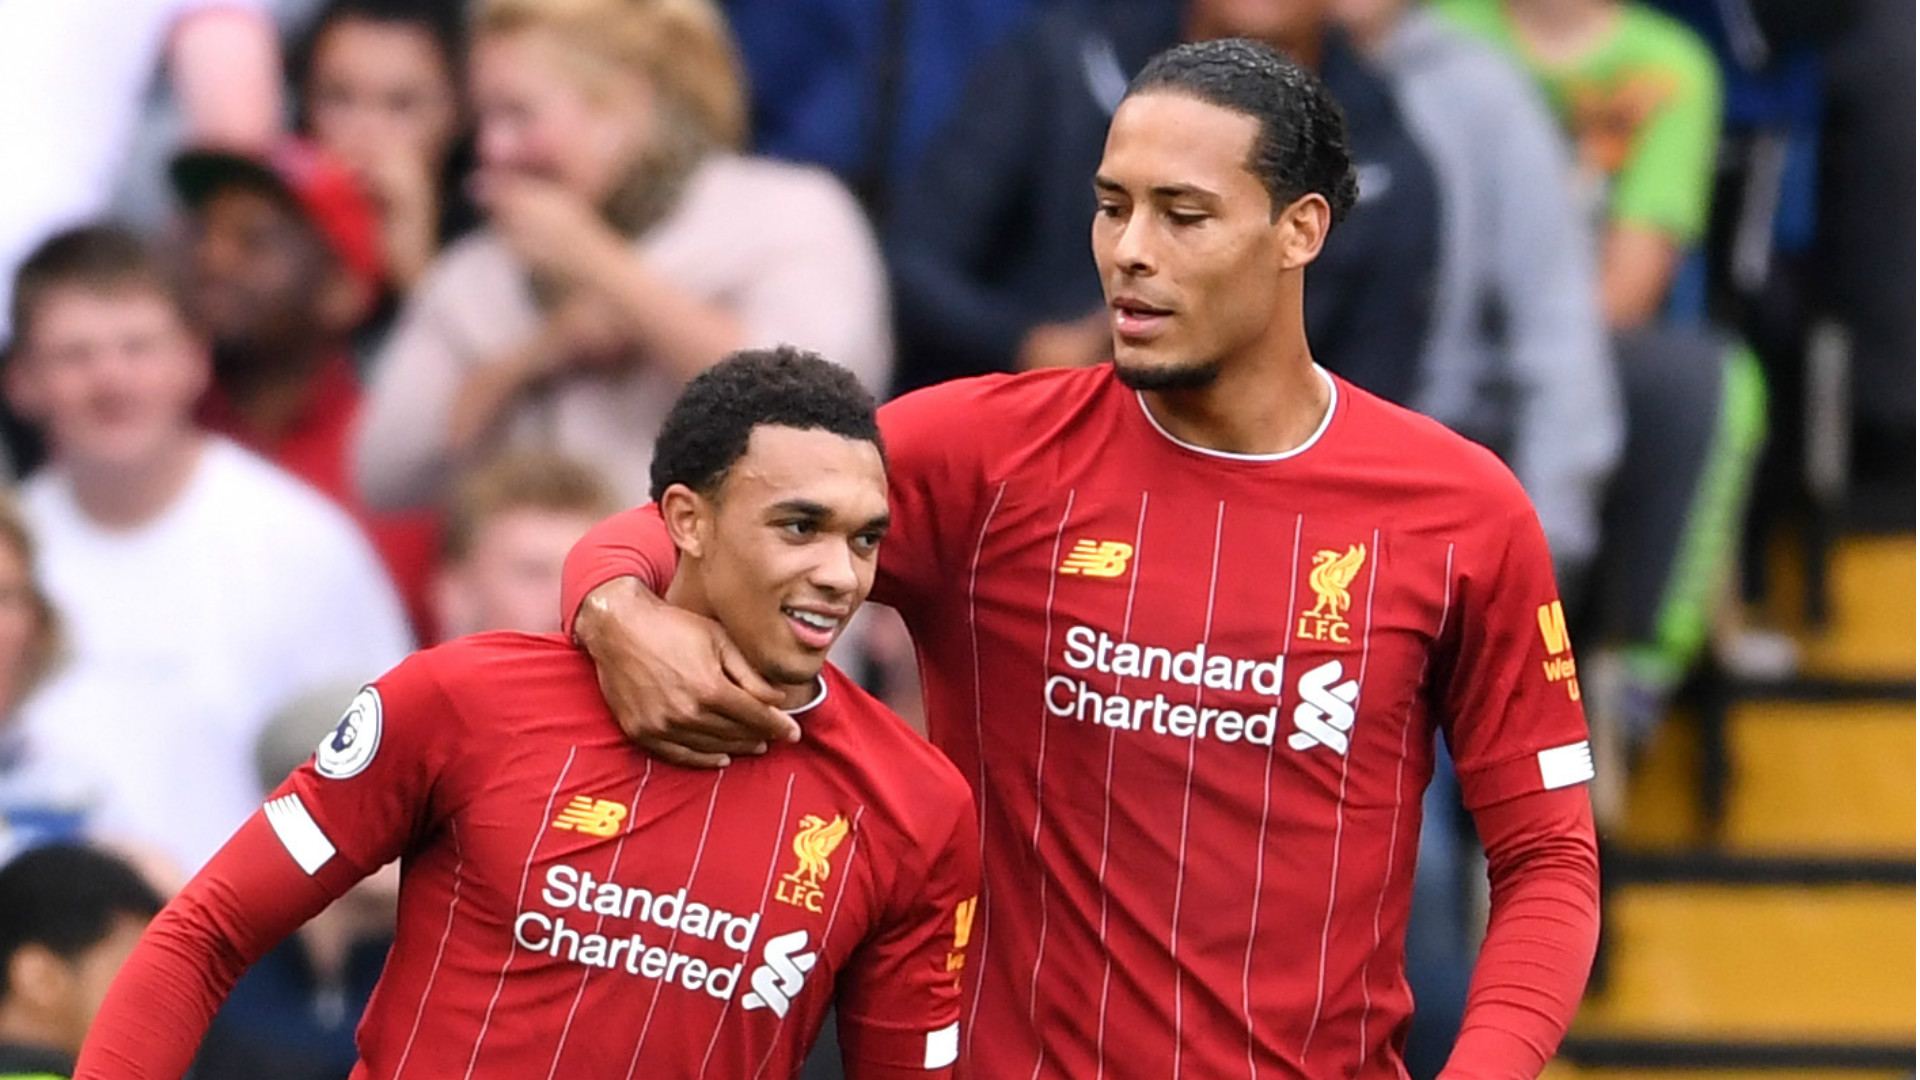 Van Dijk should have won the Ballon d'Or & Alexander-Arnold can become one of the best in the world - Fabinho